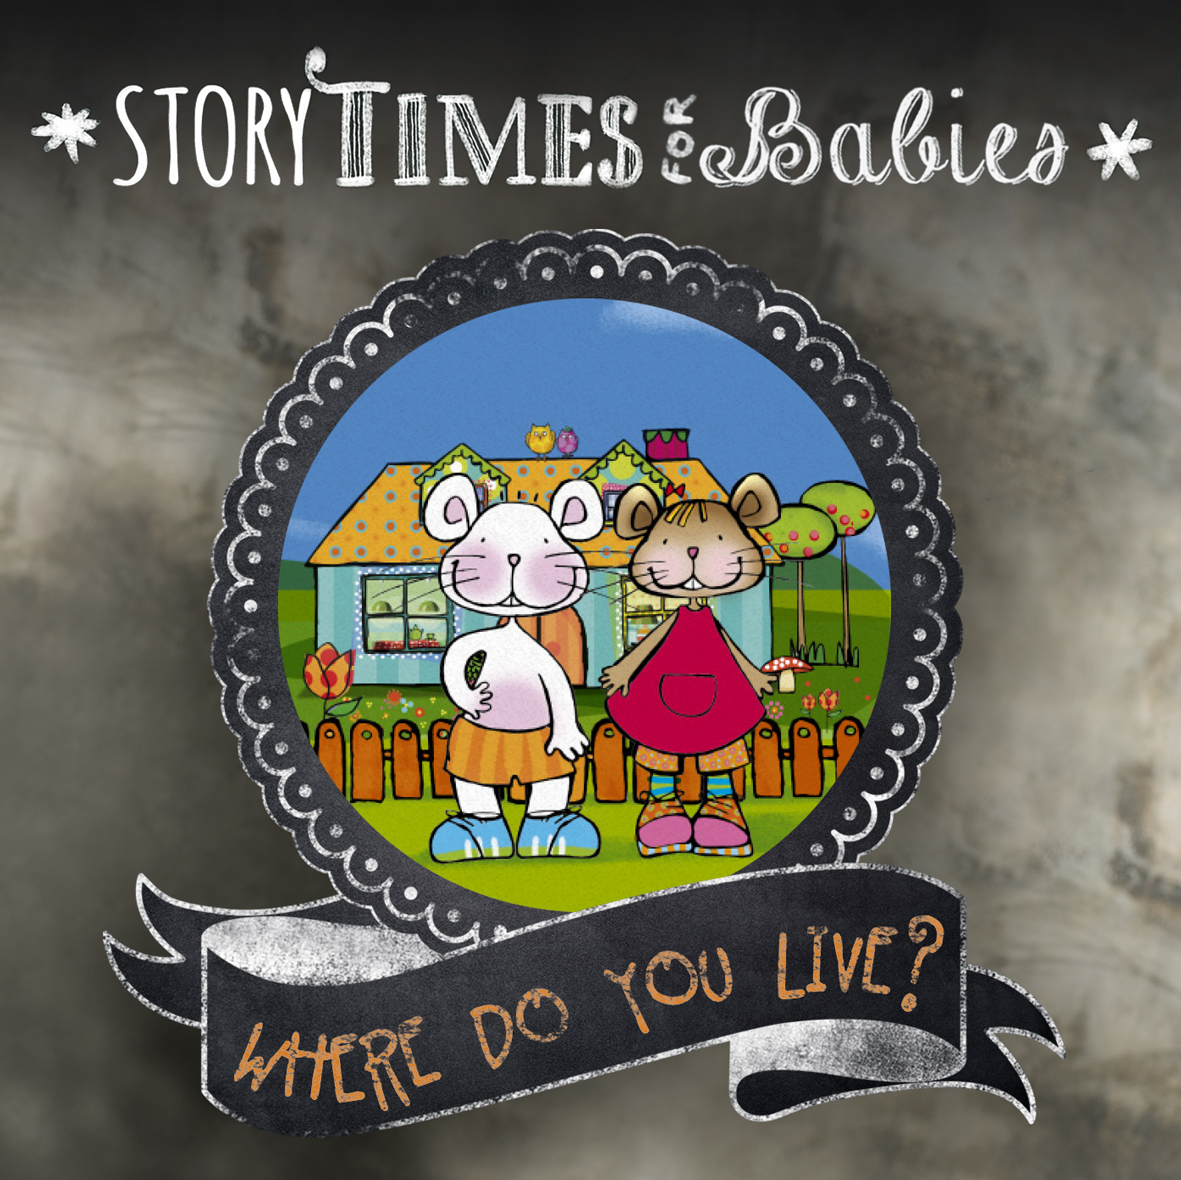 Storytime for babies: Where do you live?